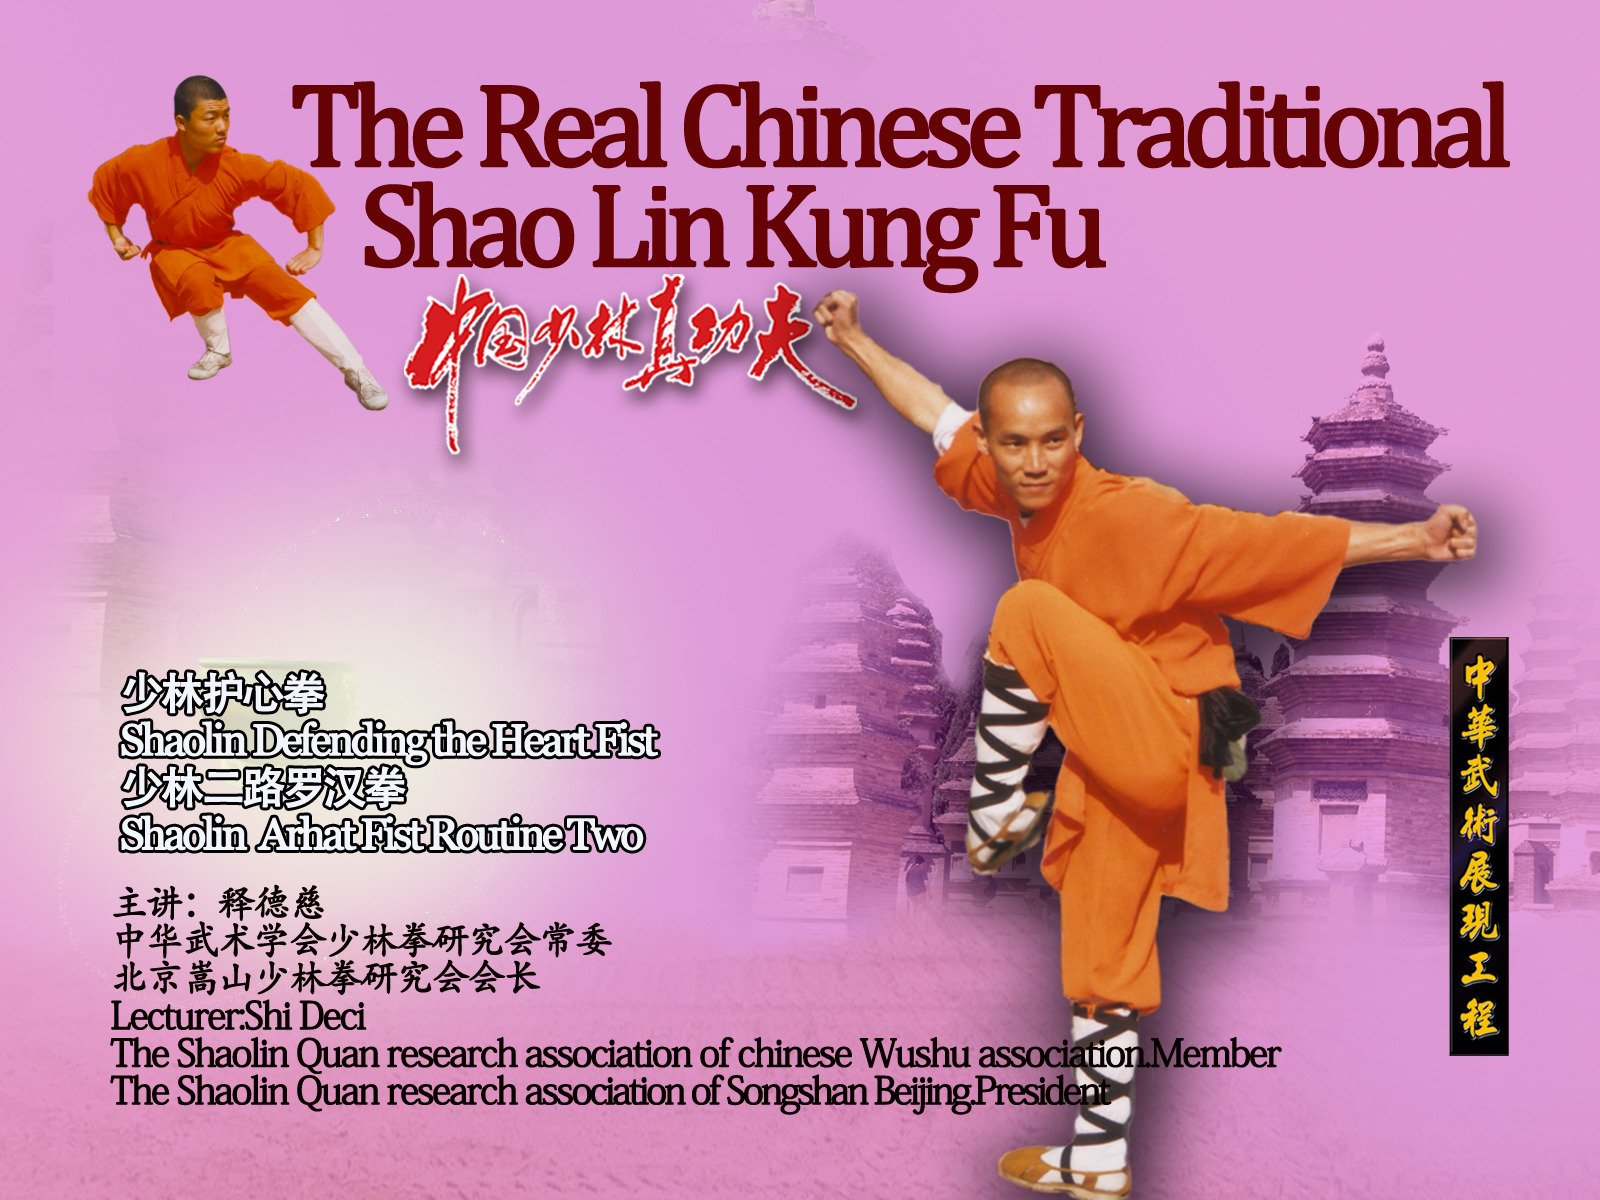 The Real Chinese Traditional Shao Lin Kung Fu - Season 2